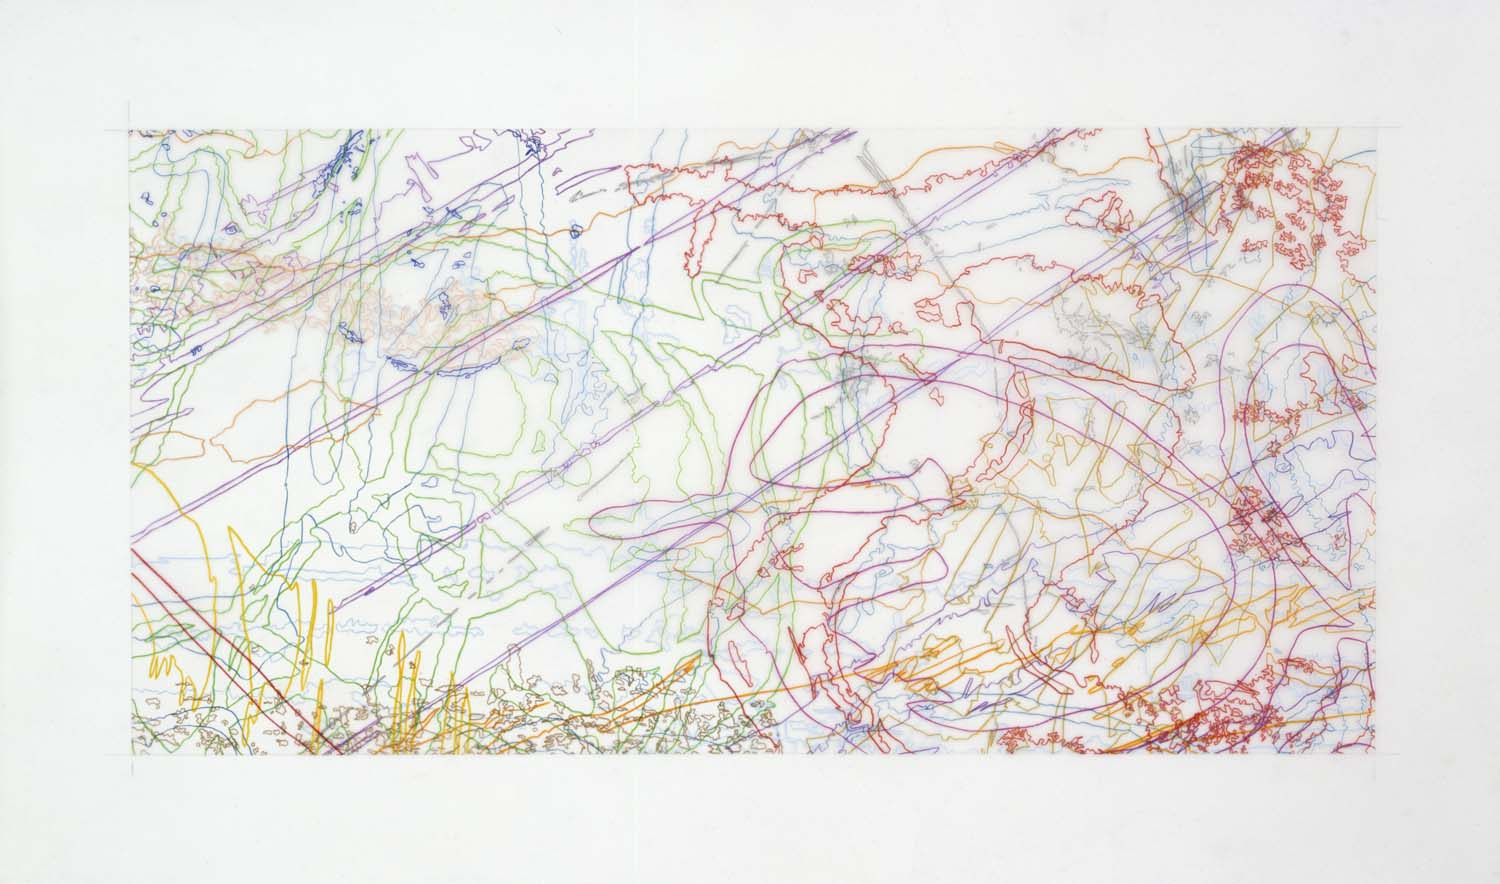 #269 Drawing (Tracings from the Indianapolis Motor Speedway and the L.A. River)